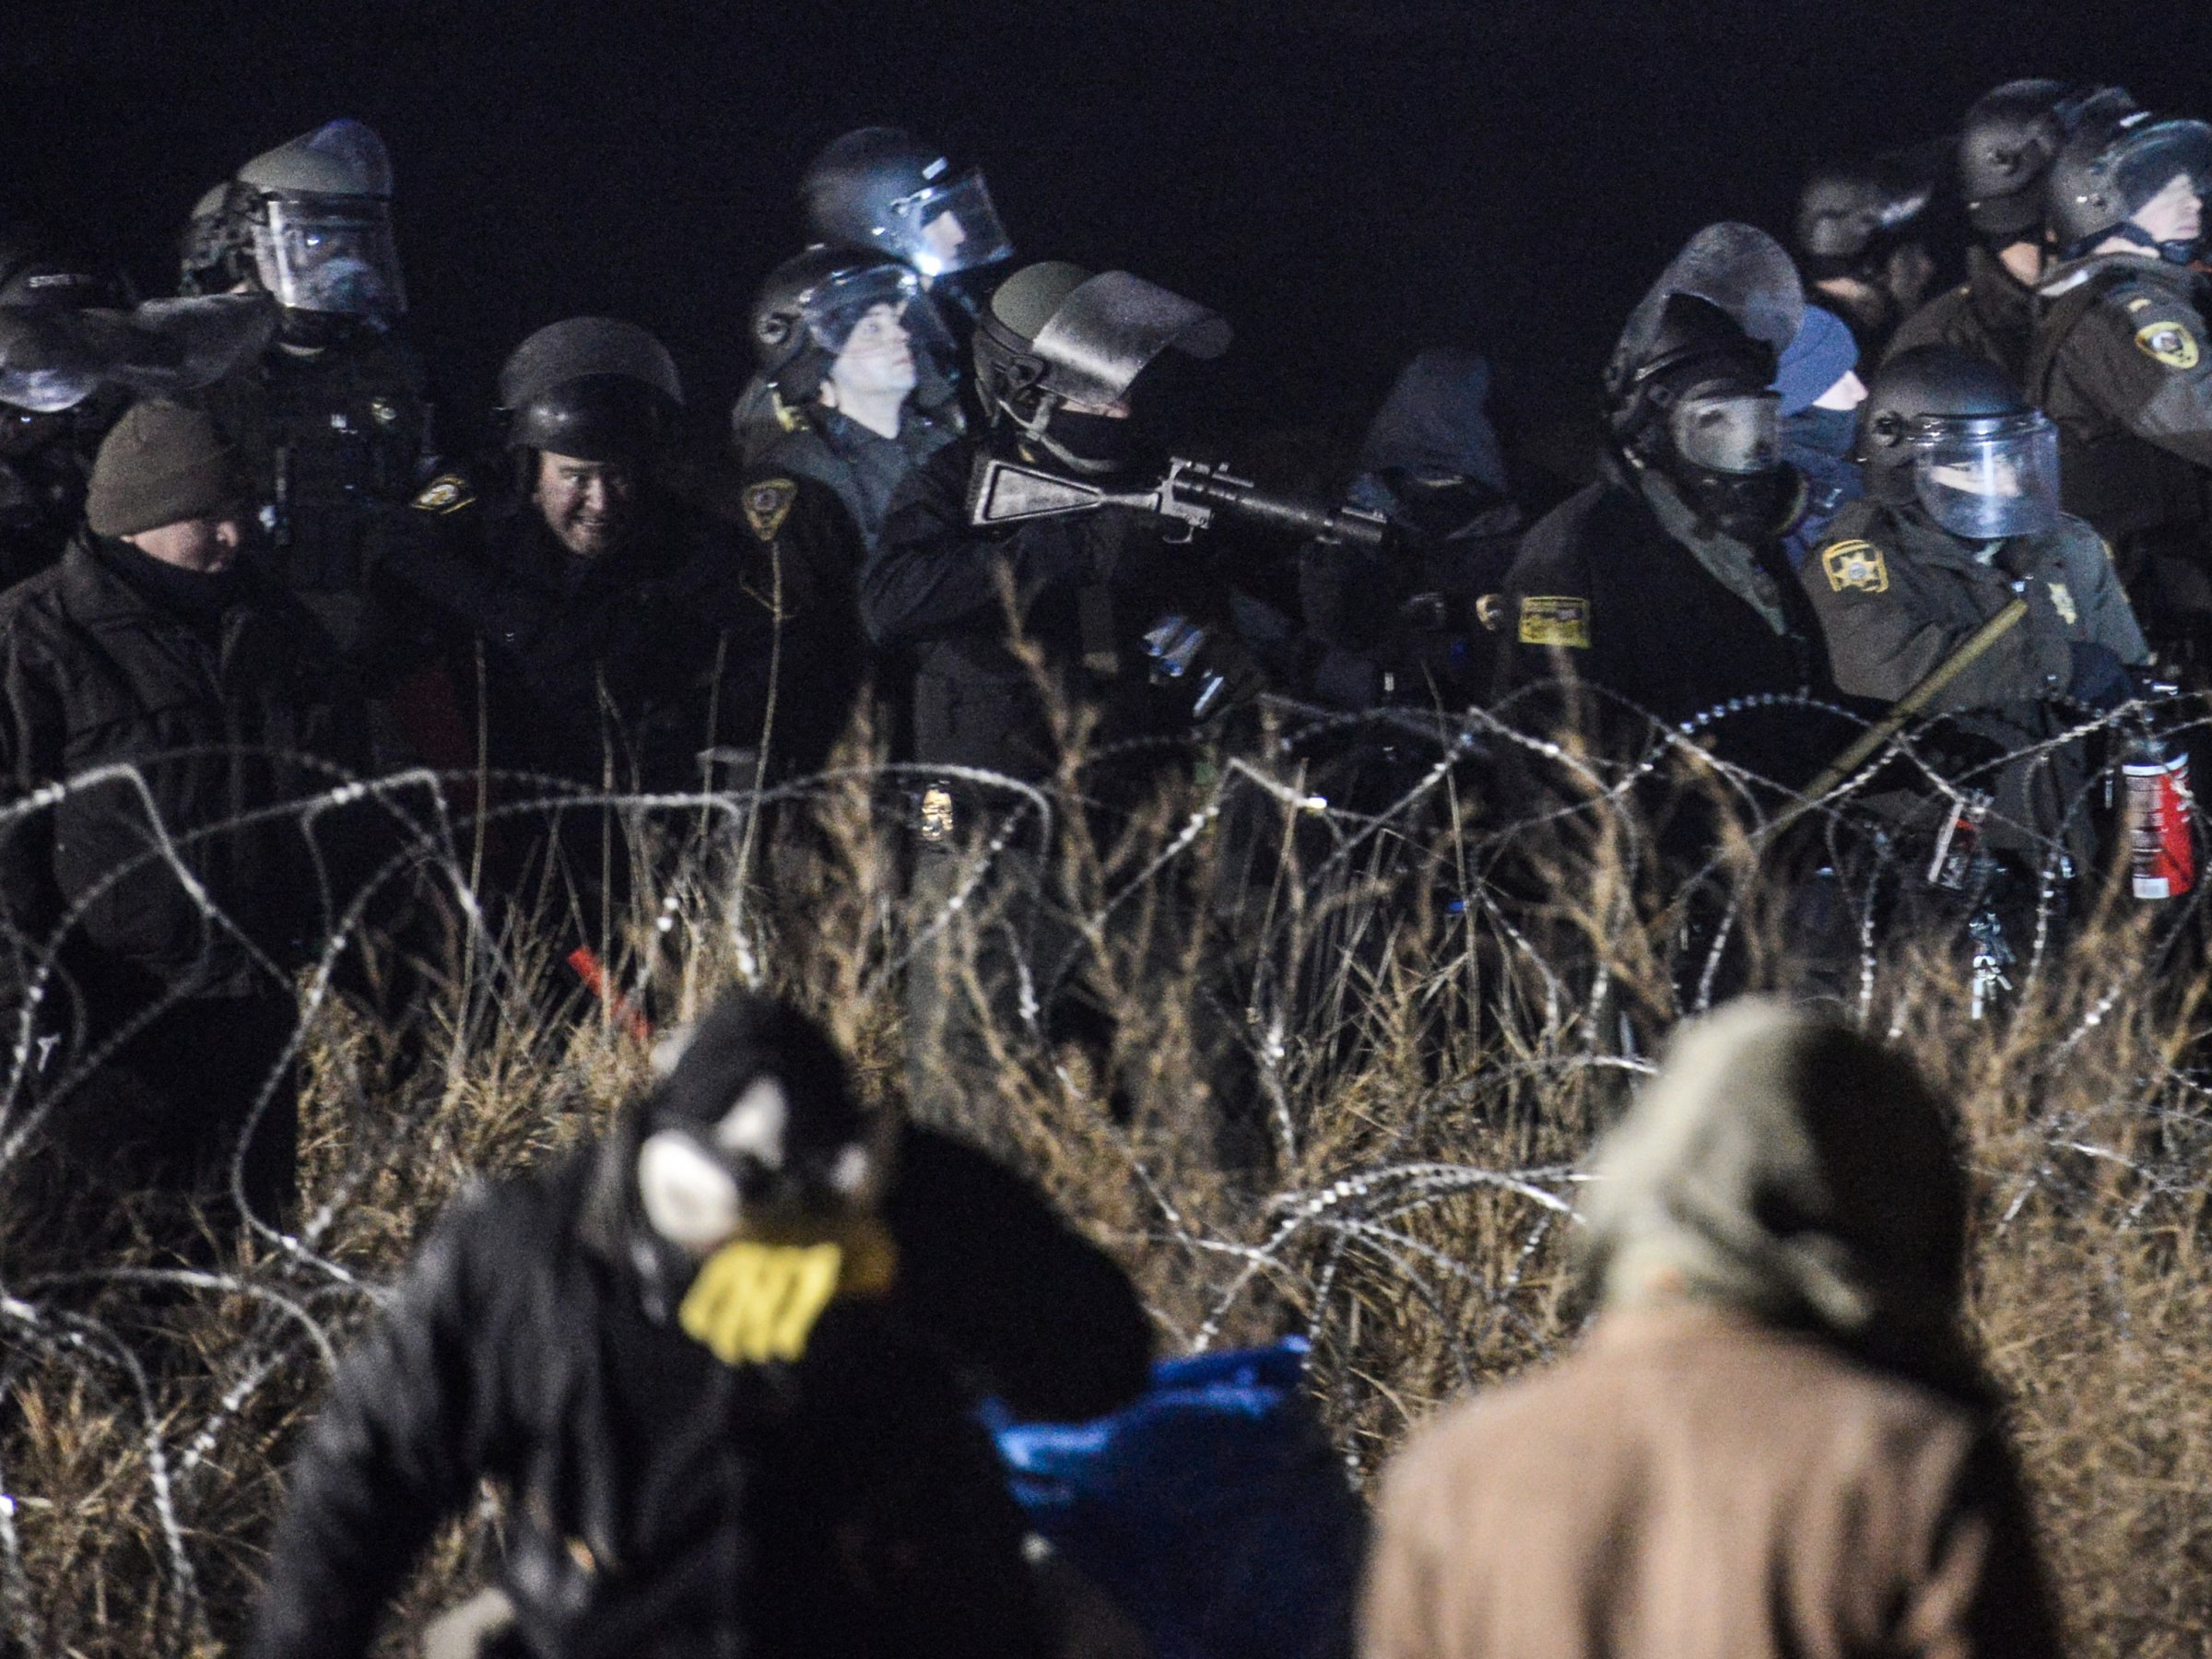 Police confront protesters with a rubber bullet gun during a protest against plans to pass the Dakota Access pipeline near the Standing Rock Indian Reservation, near Cannon Ball, North Dakota, U.S. November 20, 2016. Stephanie Keith/REUTERS